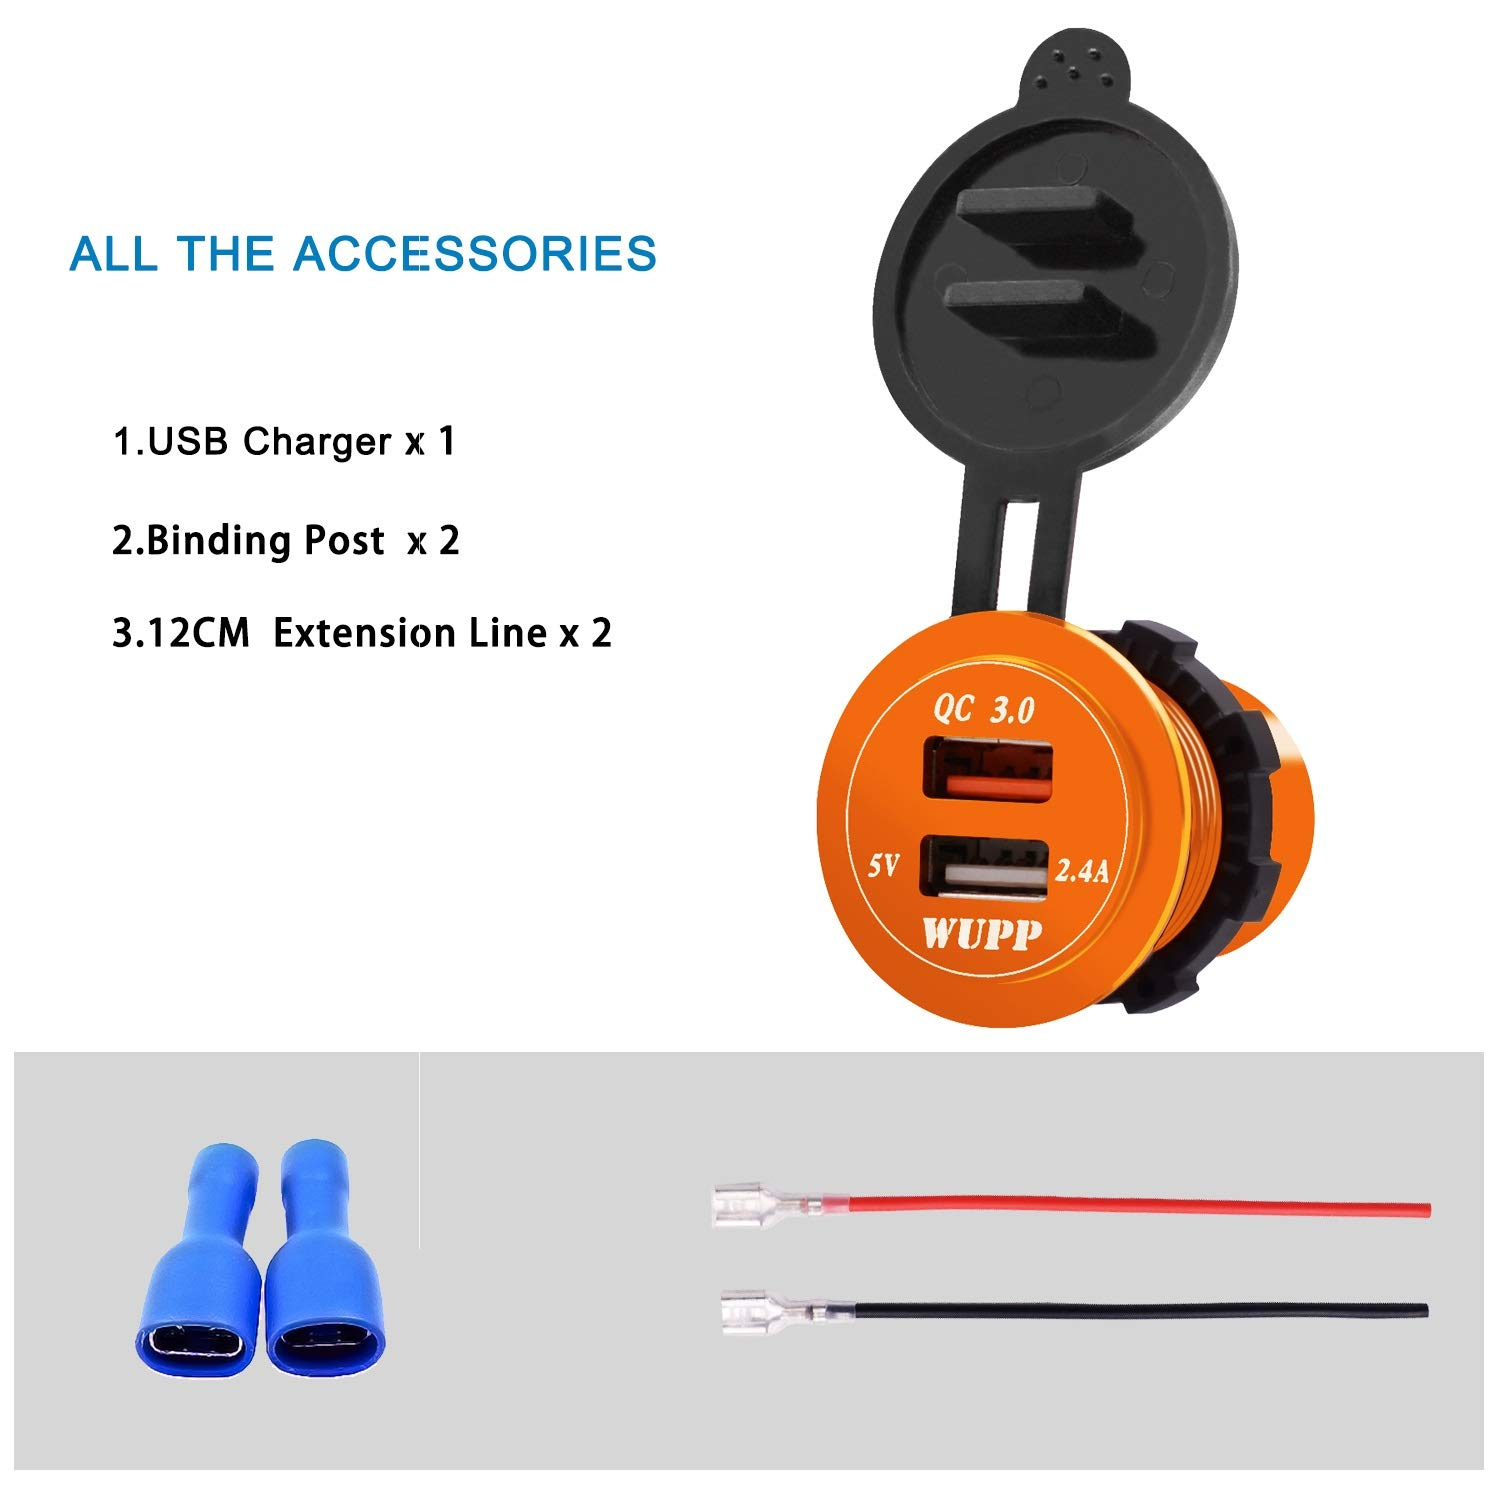 YOZOOE USB Car Dual Charger QC3.0 Quick Charger 30W Aluminum Alloy Waterproof USB Port Charger For Phone GPS Color : Yellow, Style : Blue light